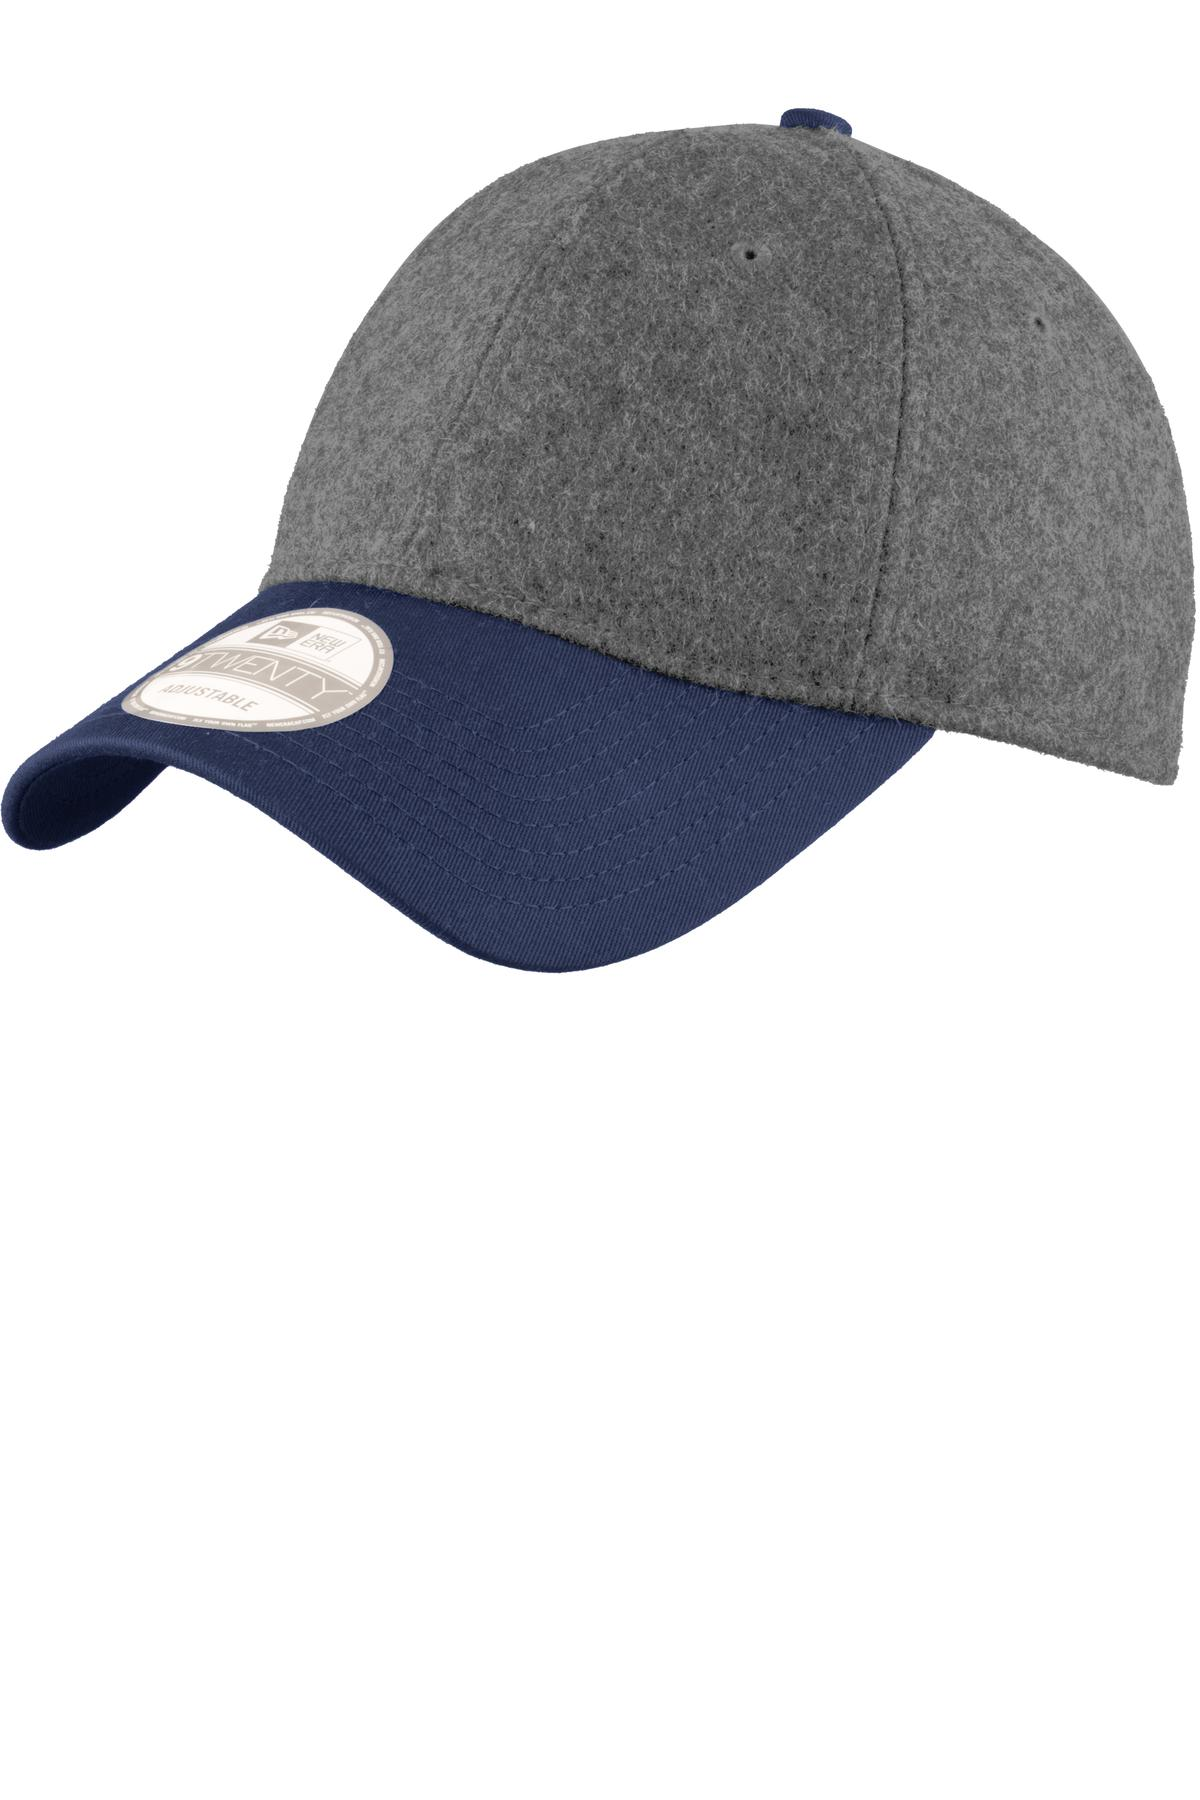 click to view Graphite Heather/ Deep Navy